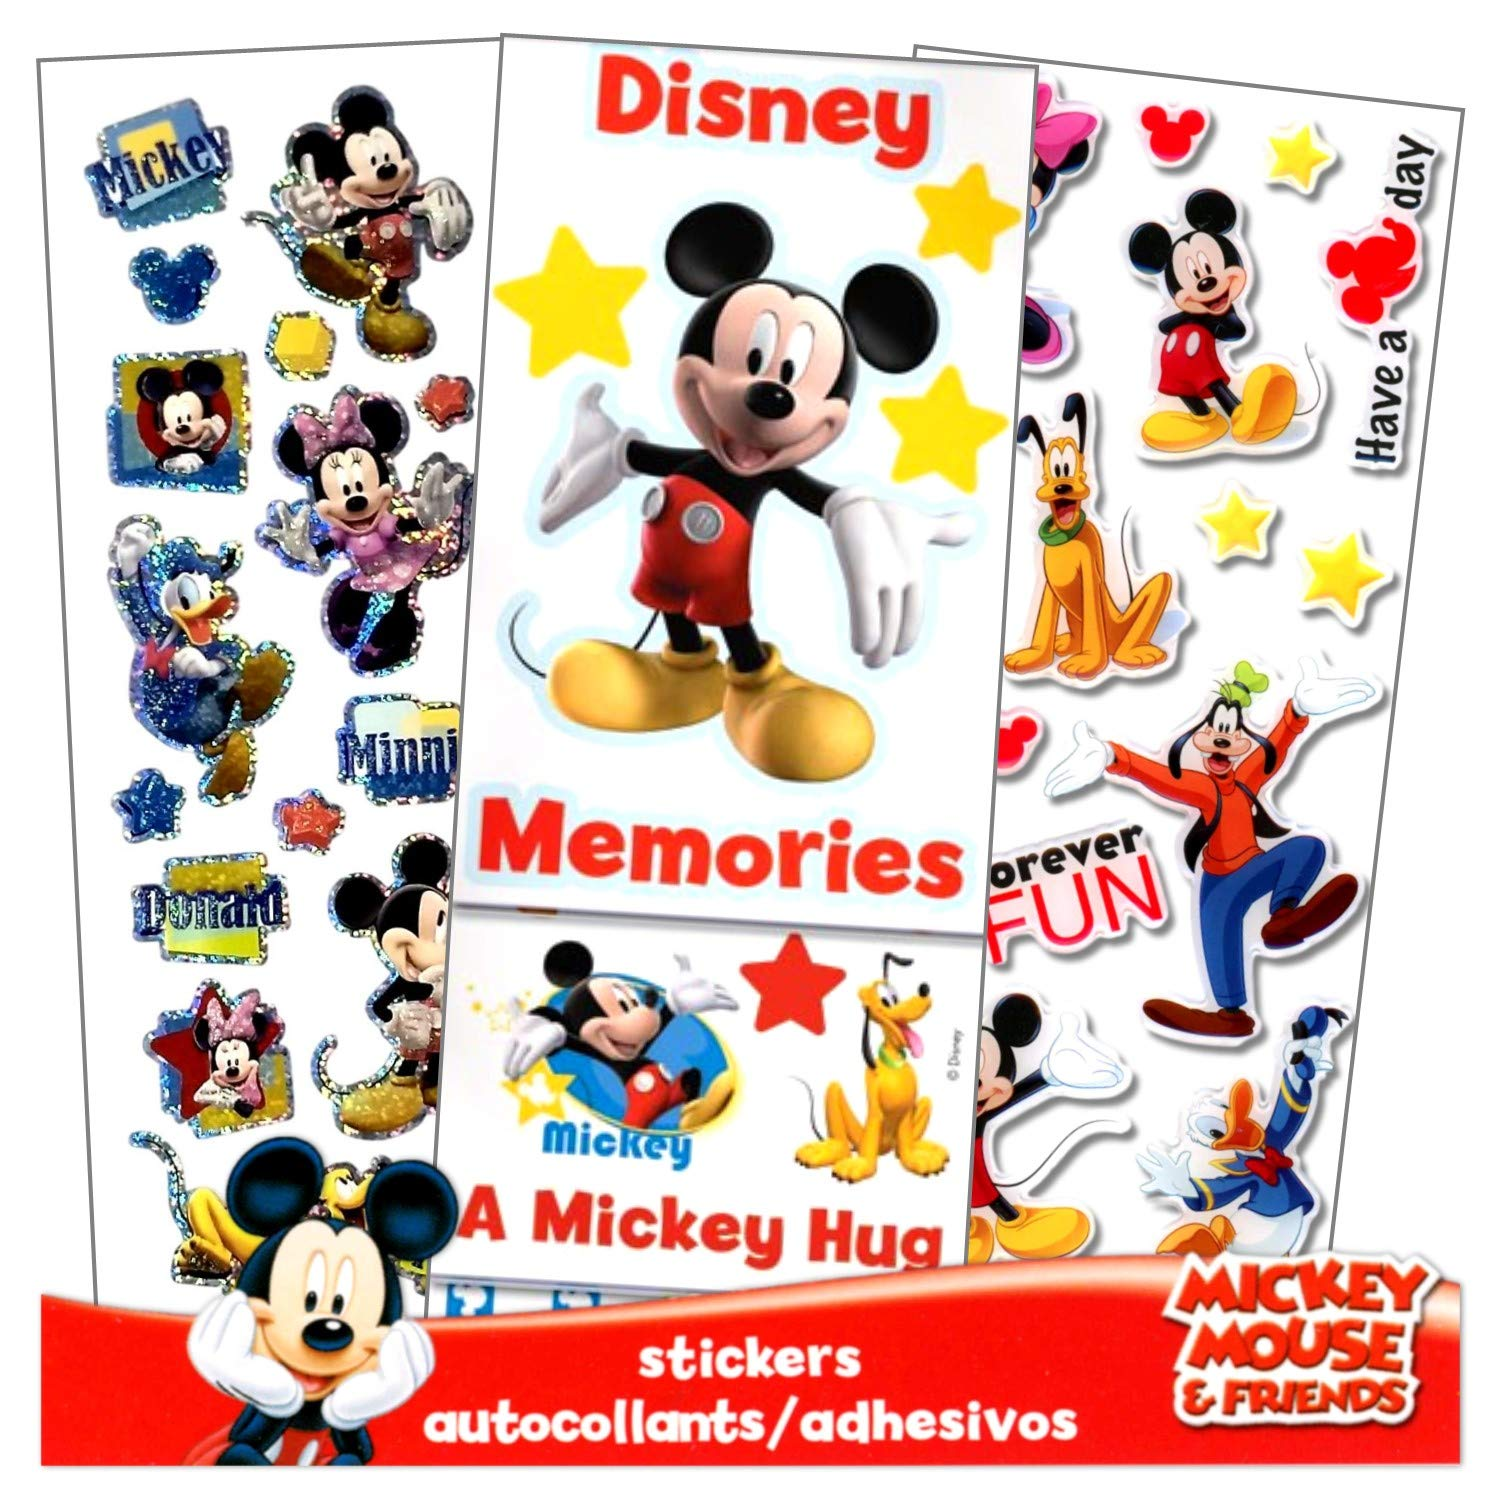 Mickey And Minnie Mouse Stickers.Disney Mickey Mouse And Minnie Mouse Stickers